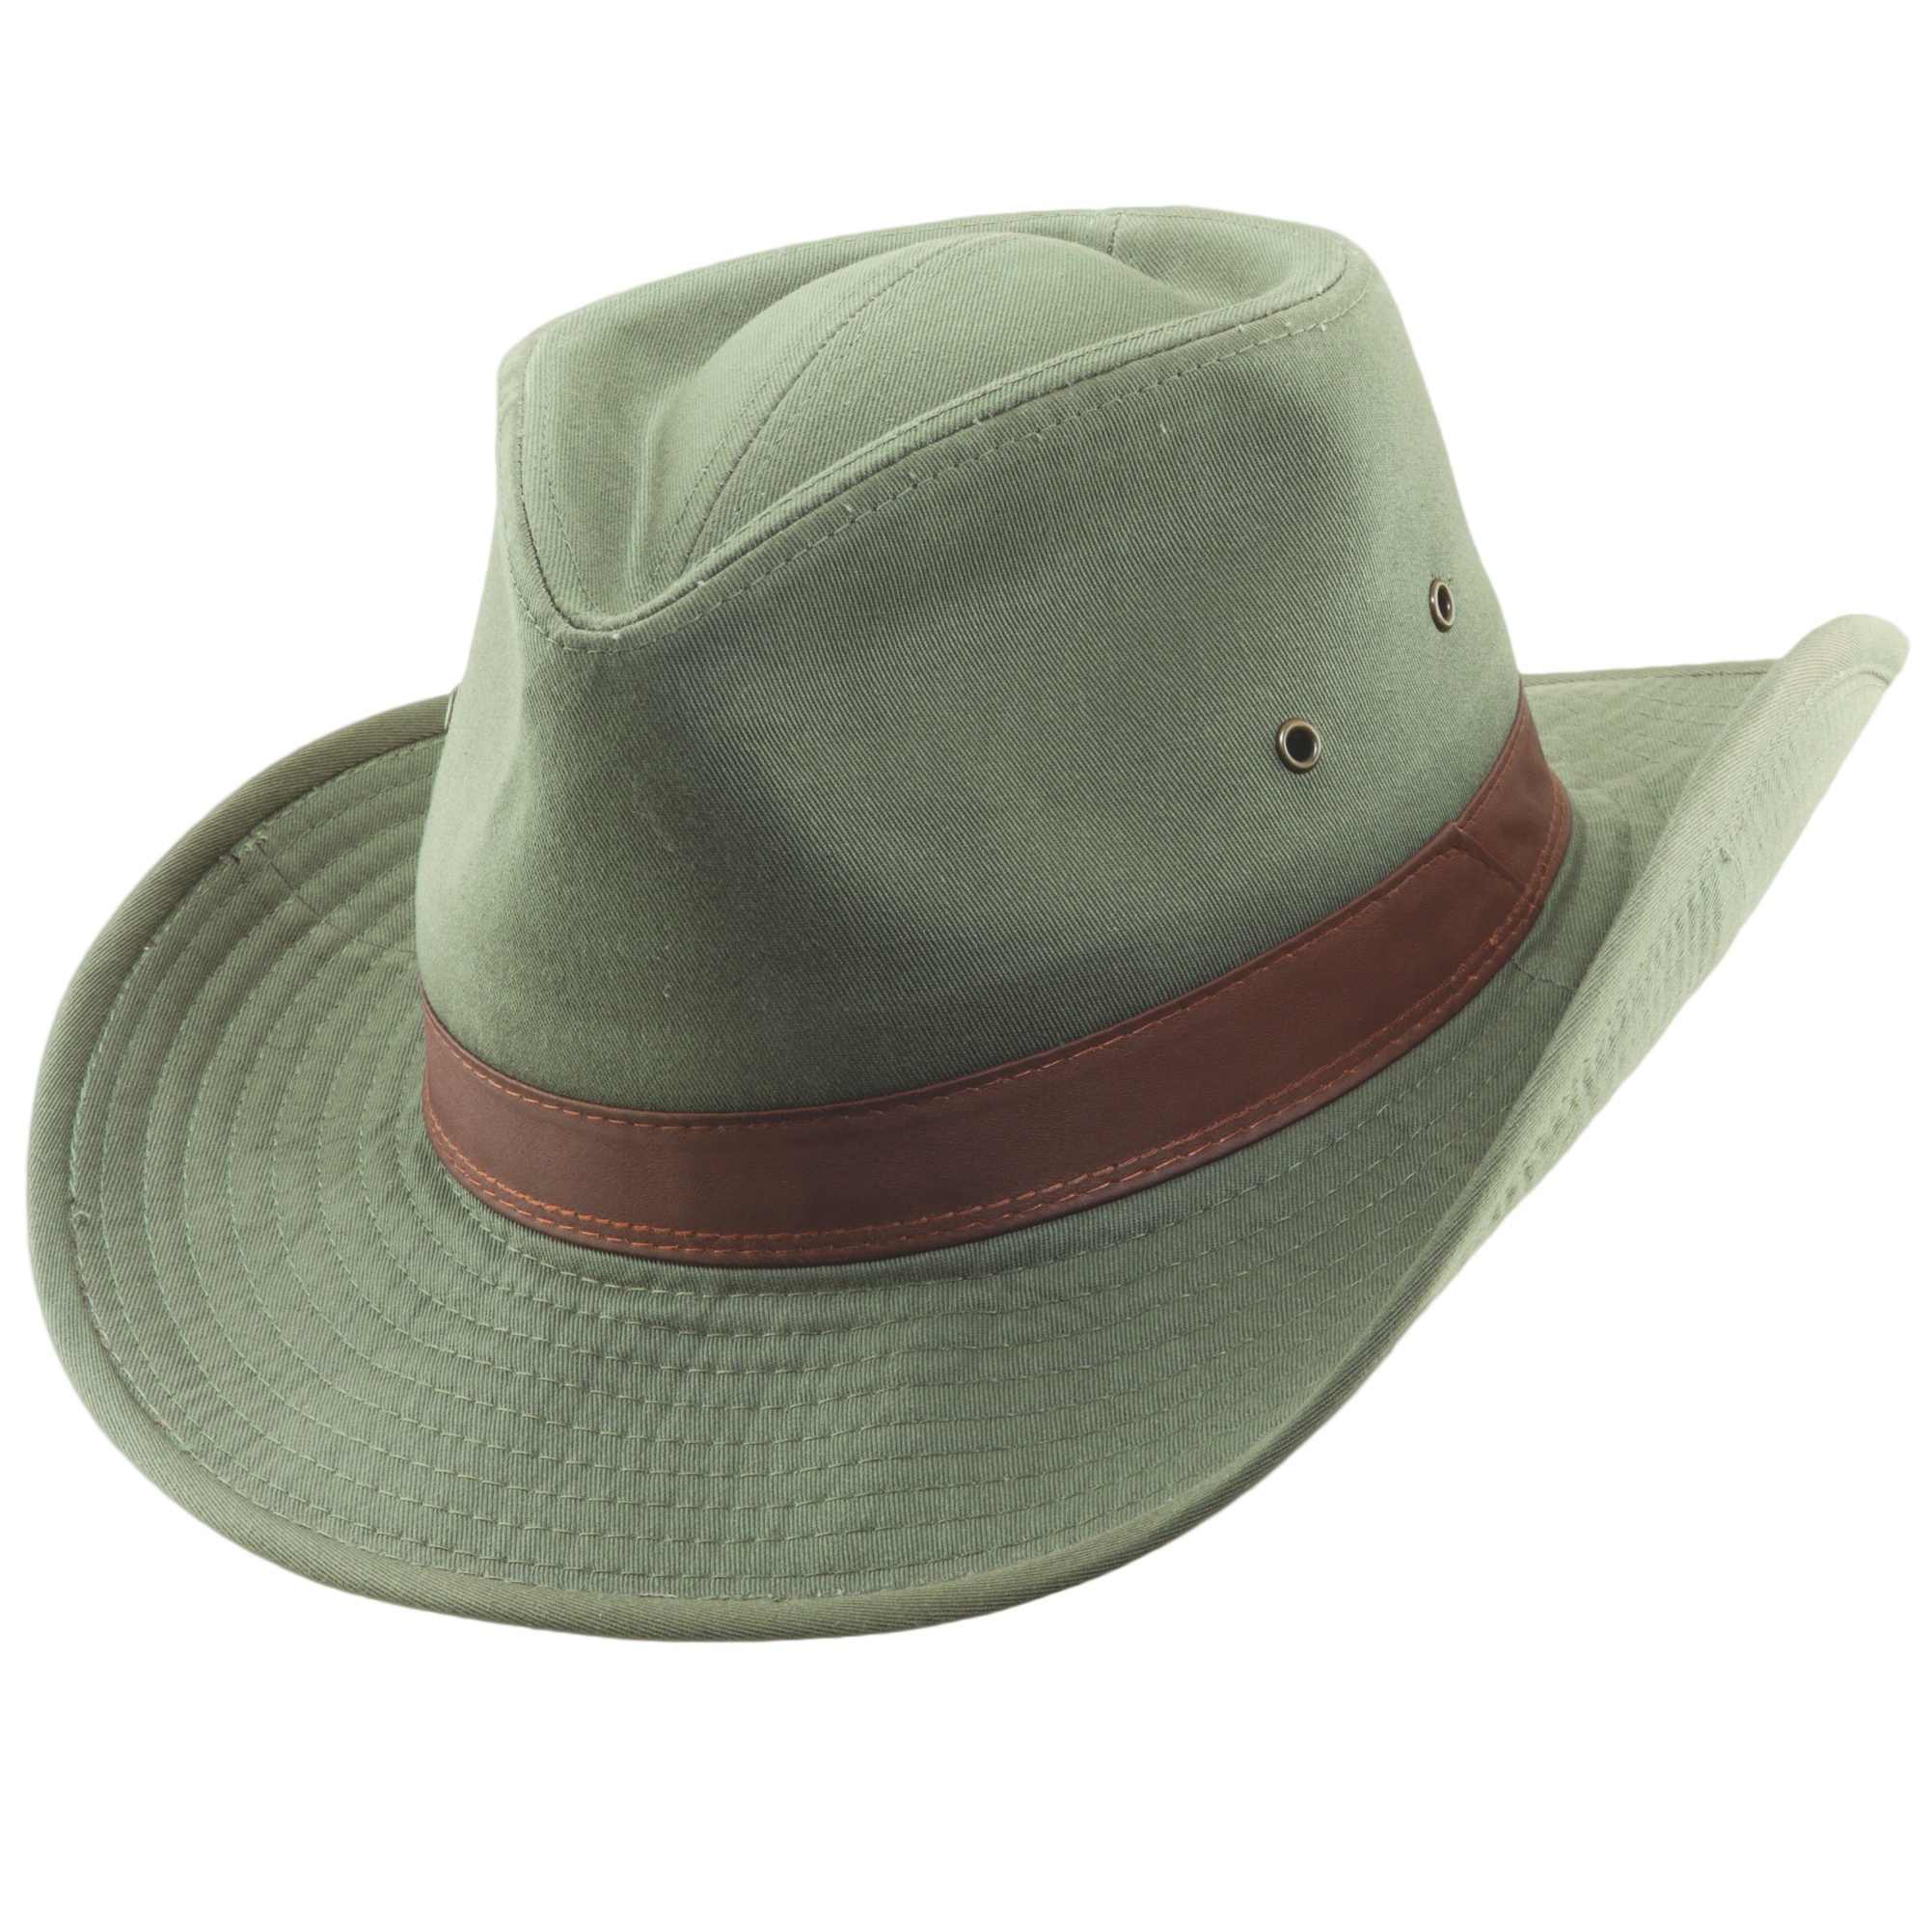 Olive Garment Washed Twill Outback Hat 02e0cdb62a8